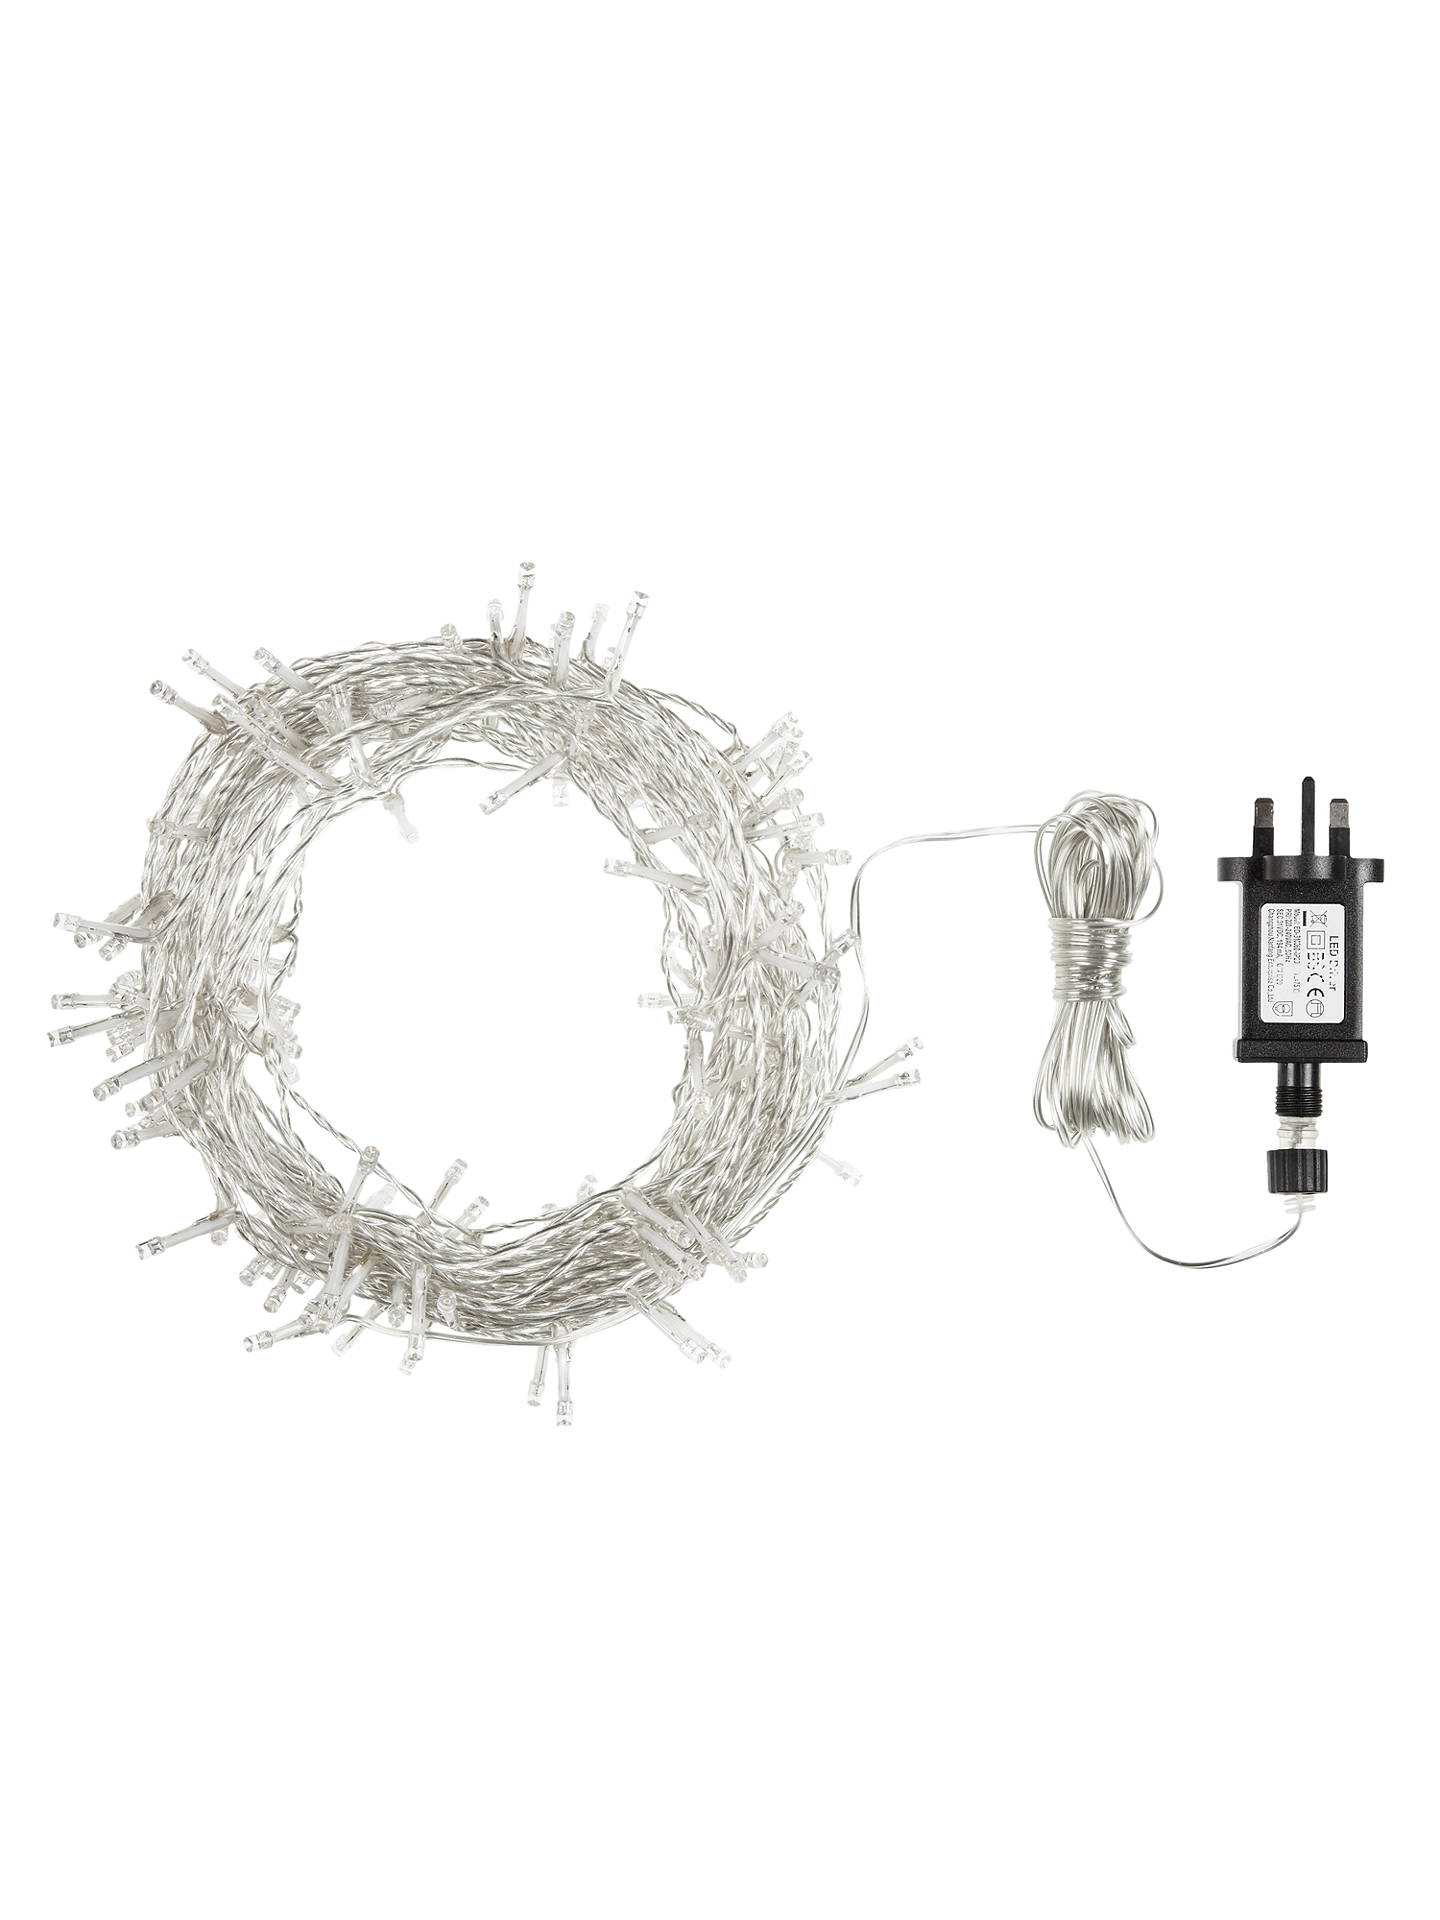 Buy John Lewis 180 Random Twinkle Indoor / Outdoor Christmas Lights with Timer, Soft White, 18m Online at johnlewis.com